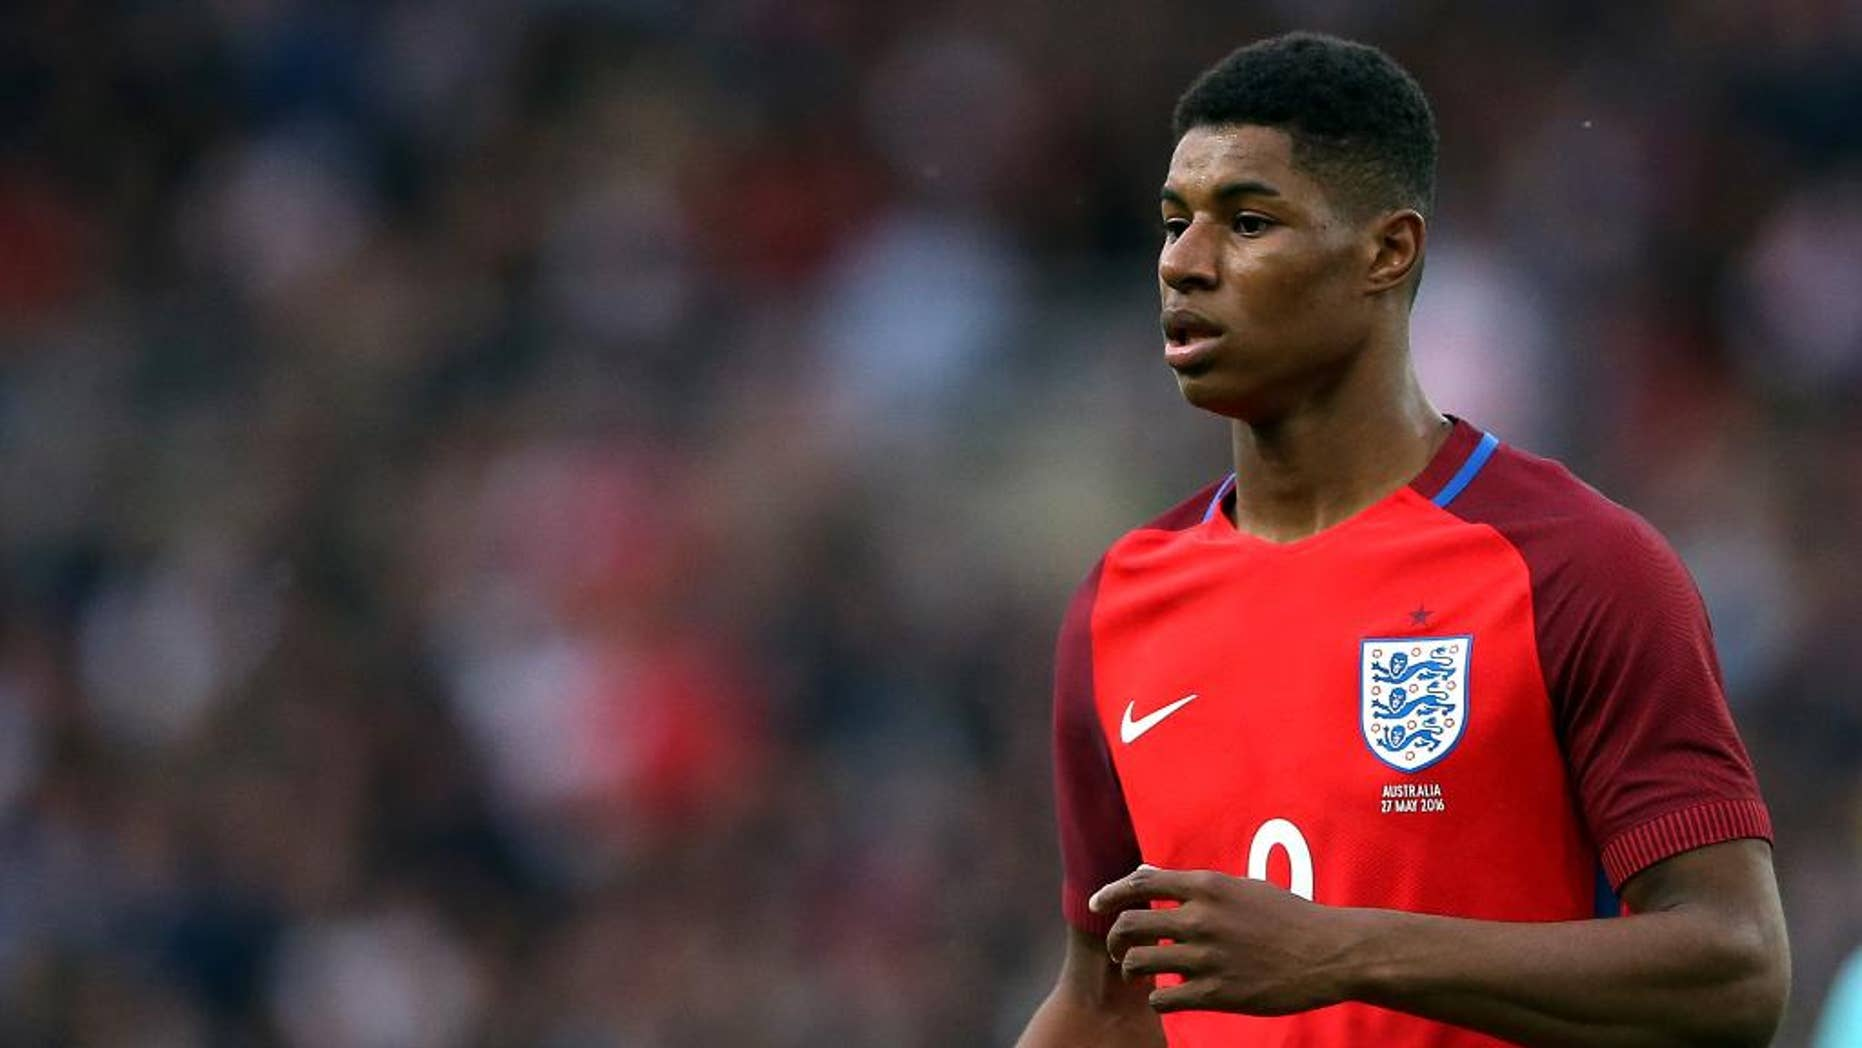 FILE - In this Friday, May 27, 2016 file photo, England's Marcus Rashford runs during the International friendly soccer match between England and Australia at the Stadium of Light, Sunderland, England. Marcus Rashford is going to the European Championship with England, barely three months after the 18-year-old striker made his senior debut with Manchester United. Rashford scored three minutes into his England debut in Friday's 2-1 win over Australia and he made the cut on Tuesday, May 31 for the final 23-man Euro 2016 squad.  (AP Photo/Scott Heppell, file)